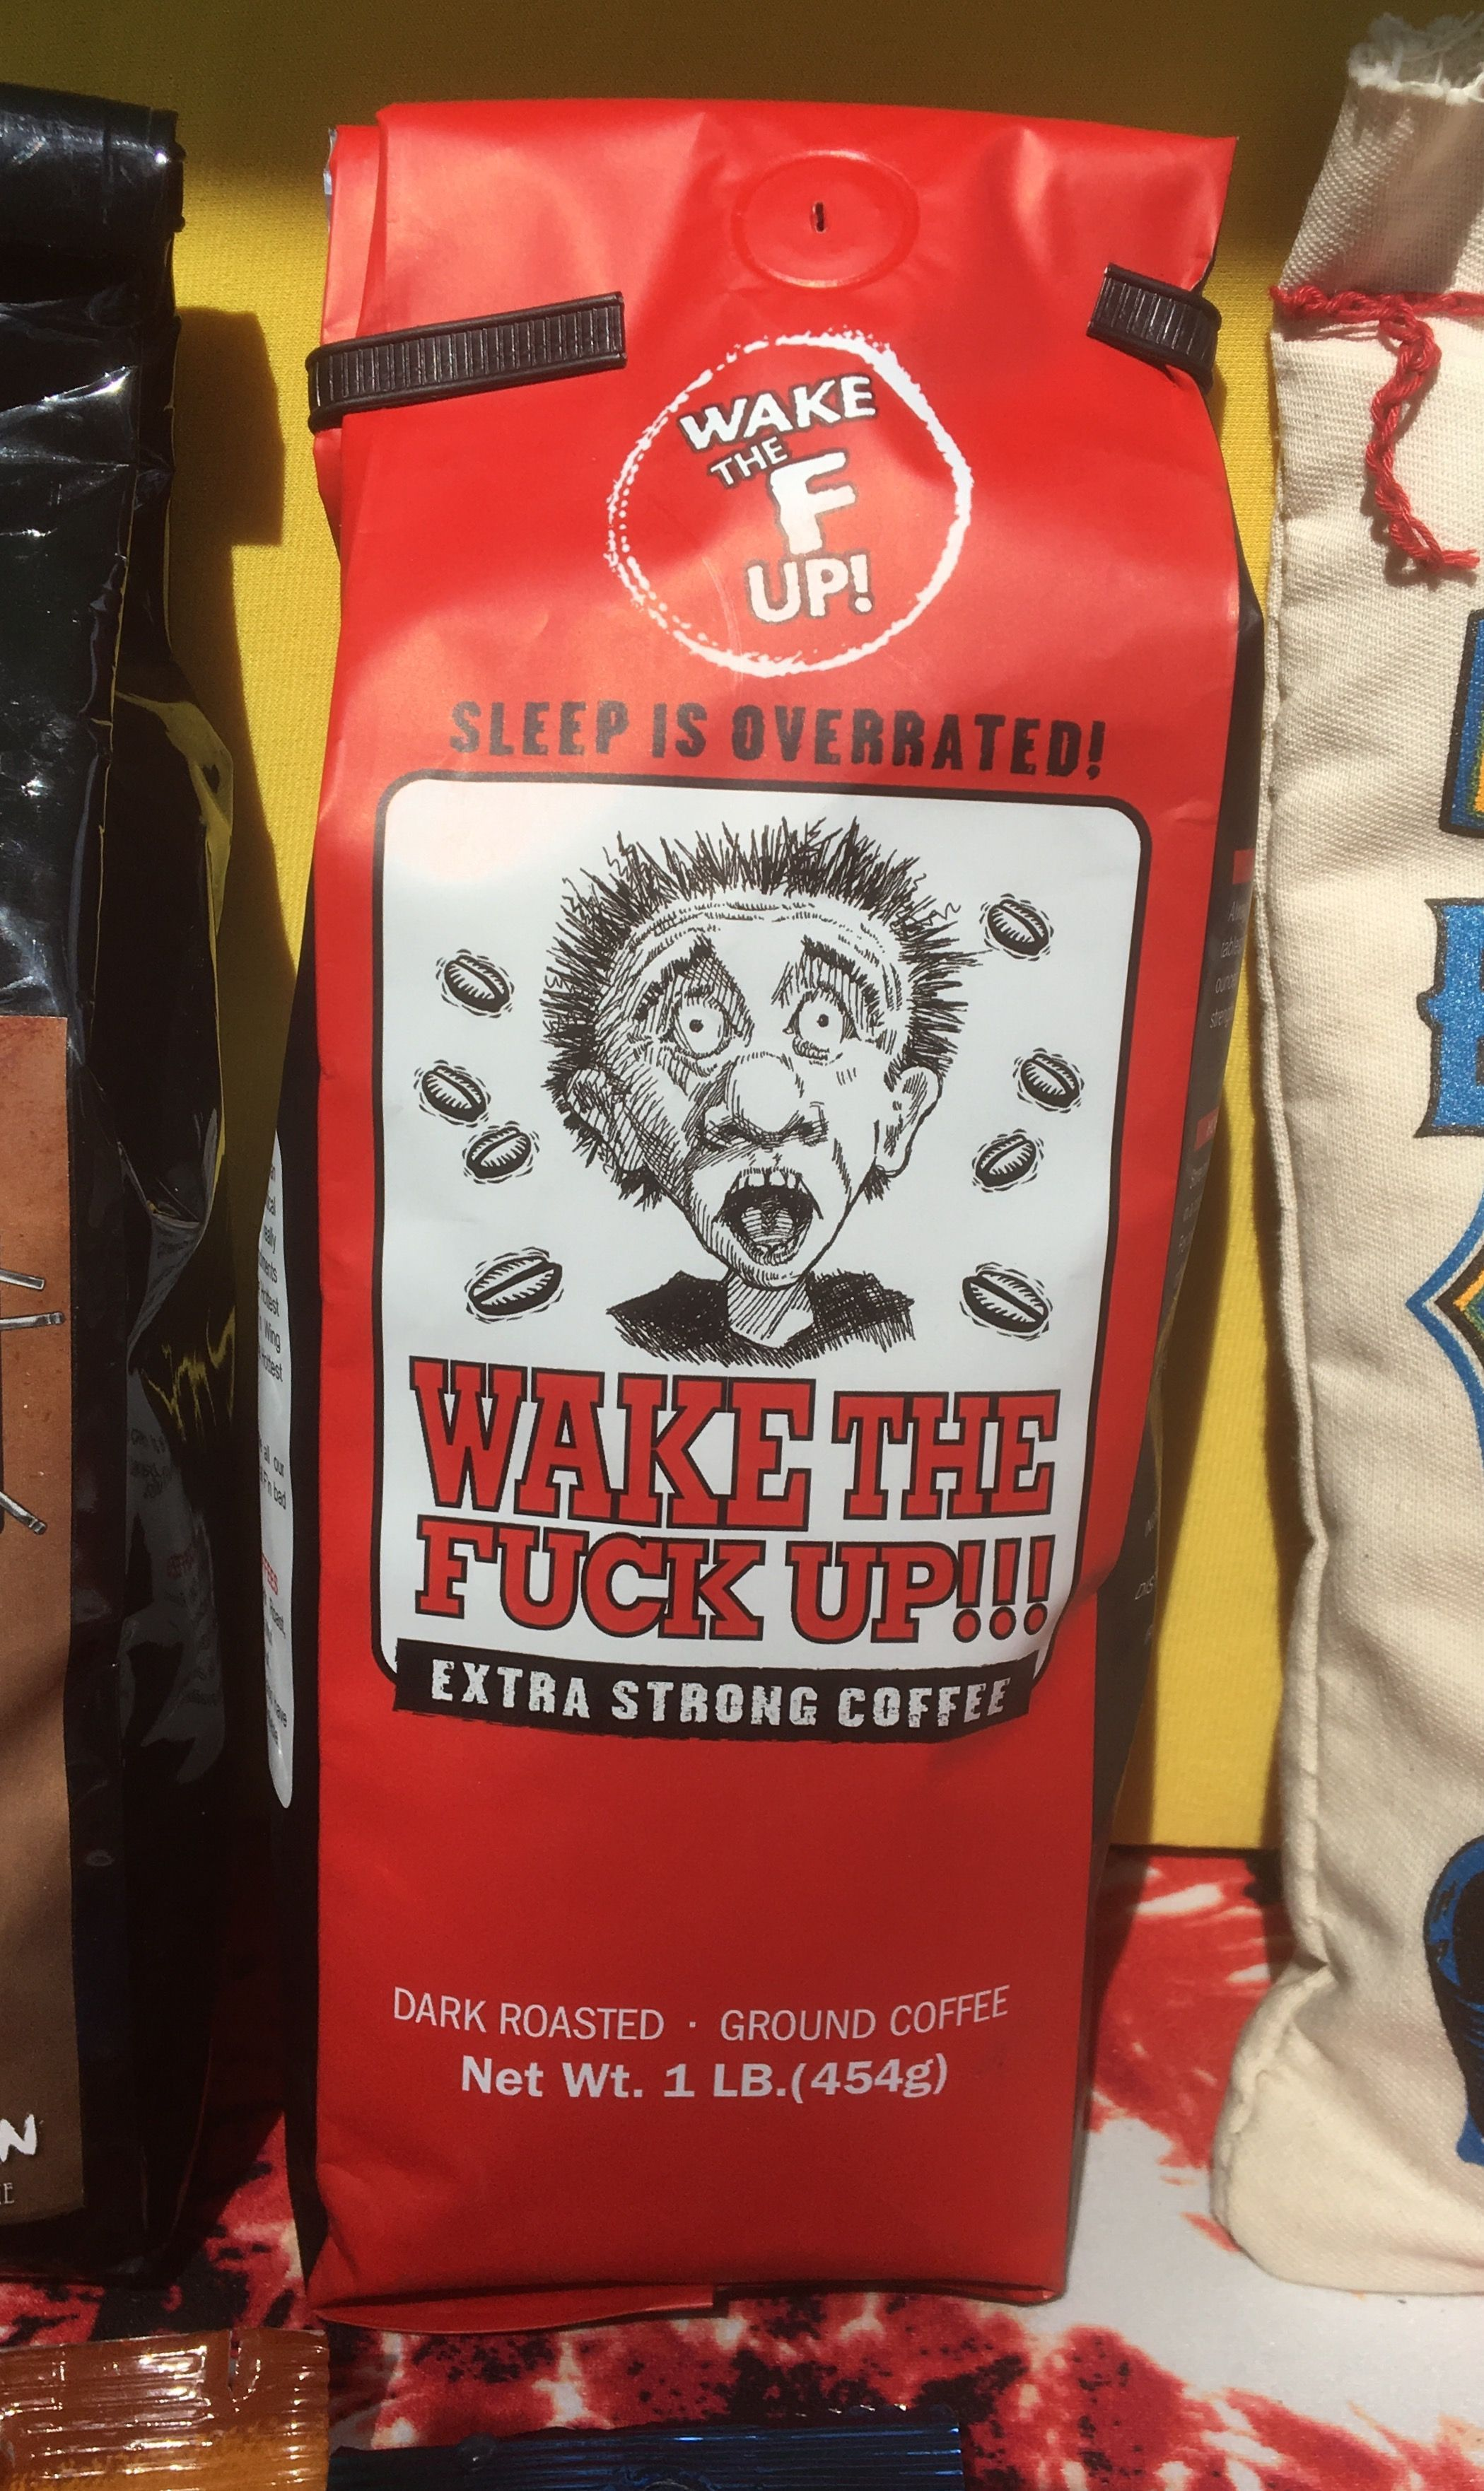 Wonder how this tastes coffeequotes Coffee quotes funny